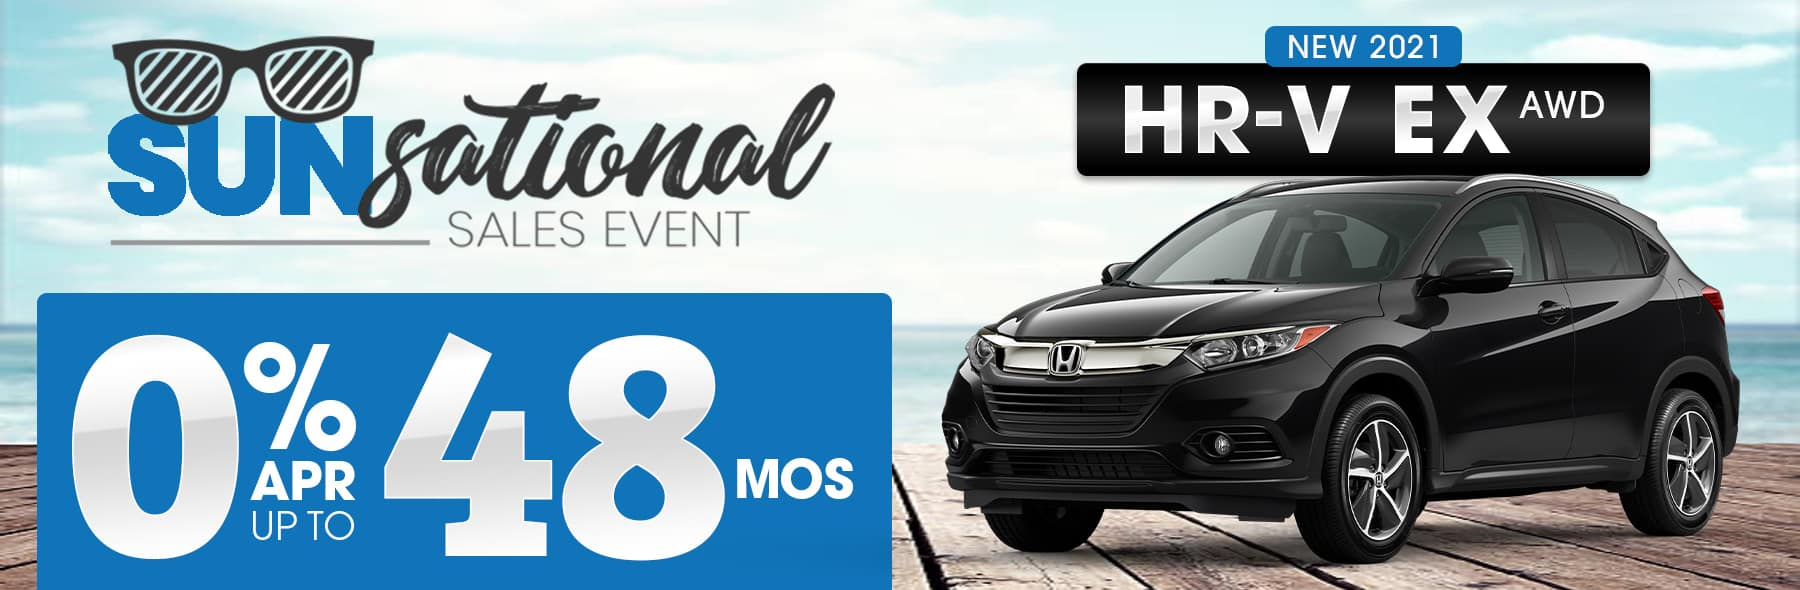 IGH-July21-HP-Offers-vHRV